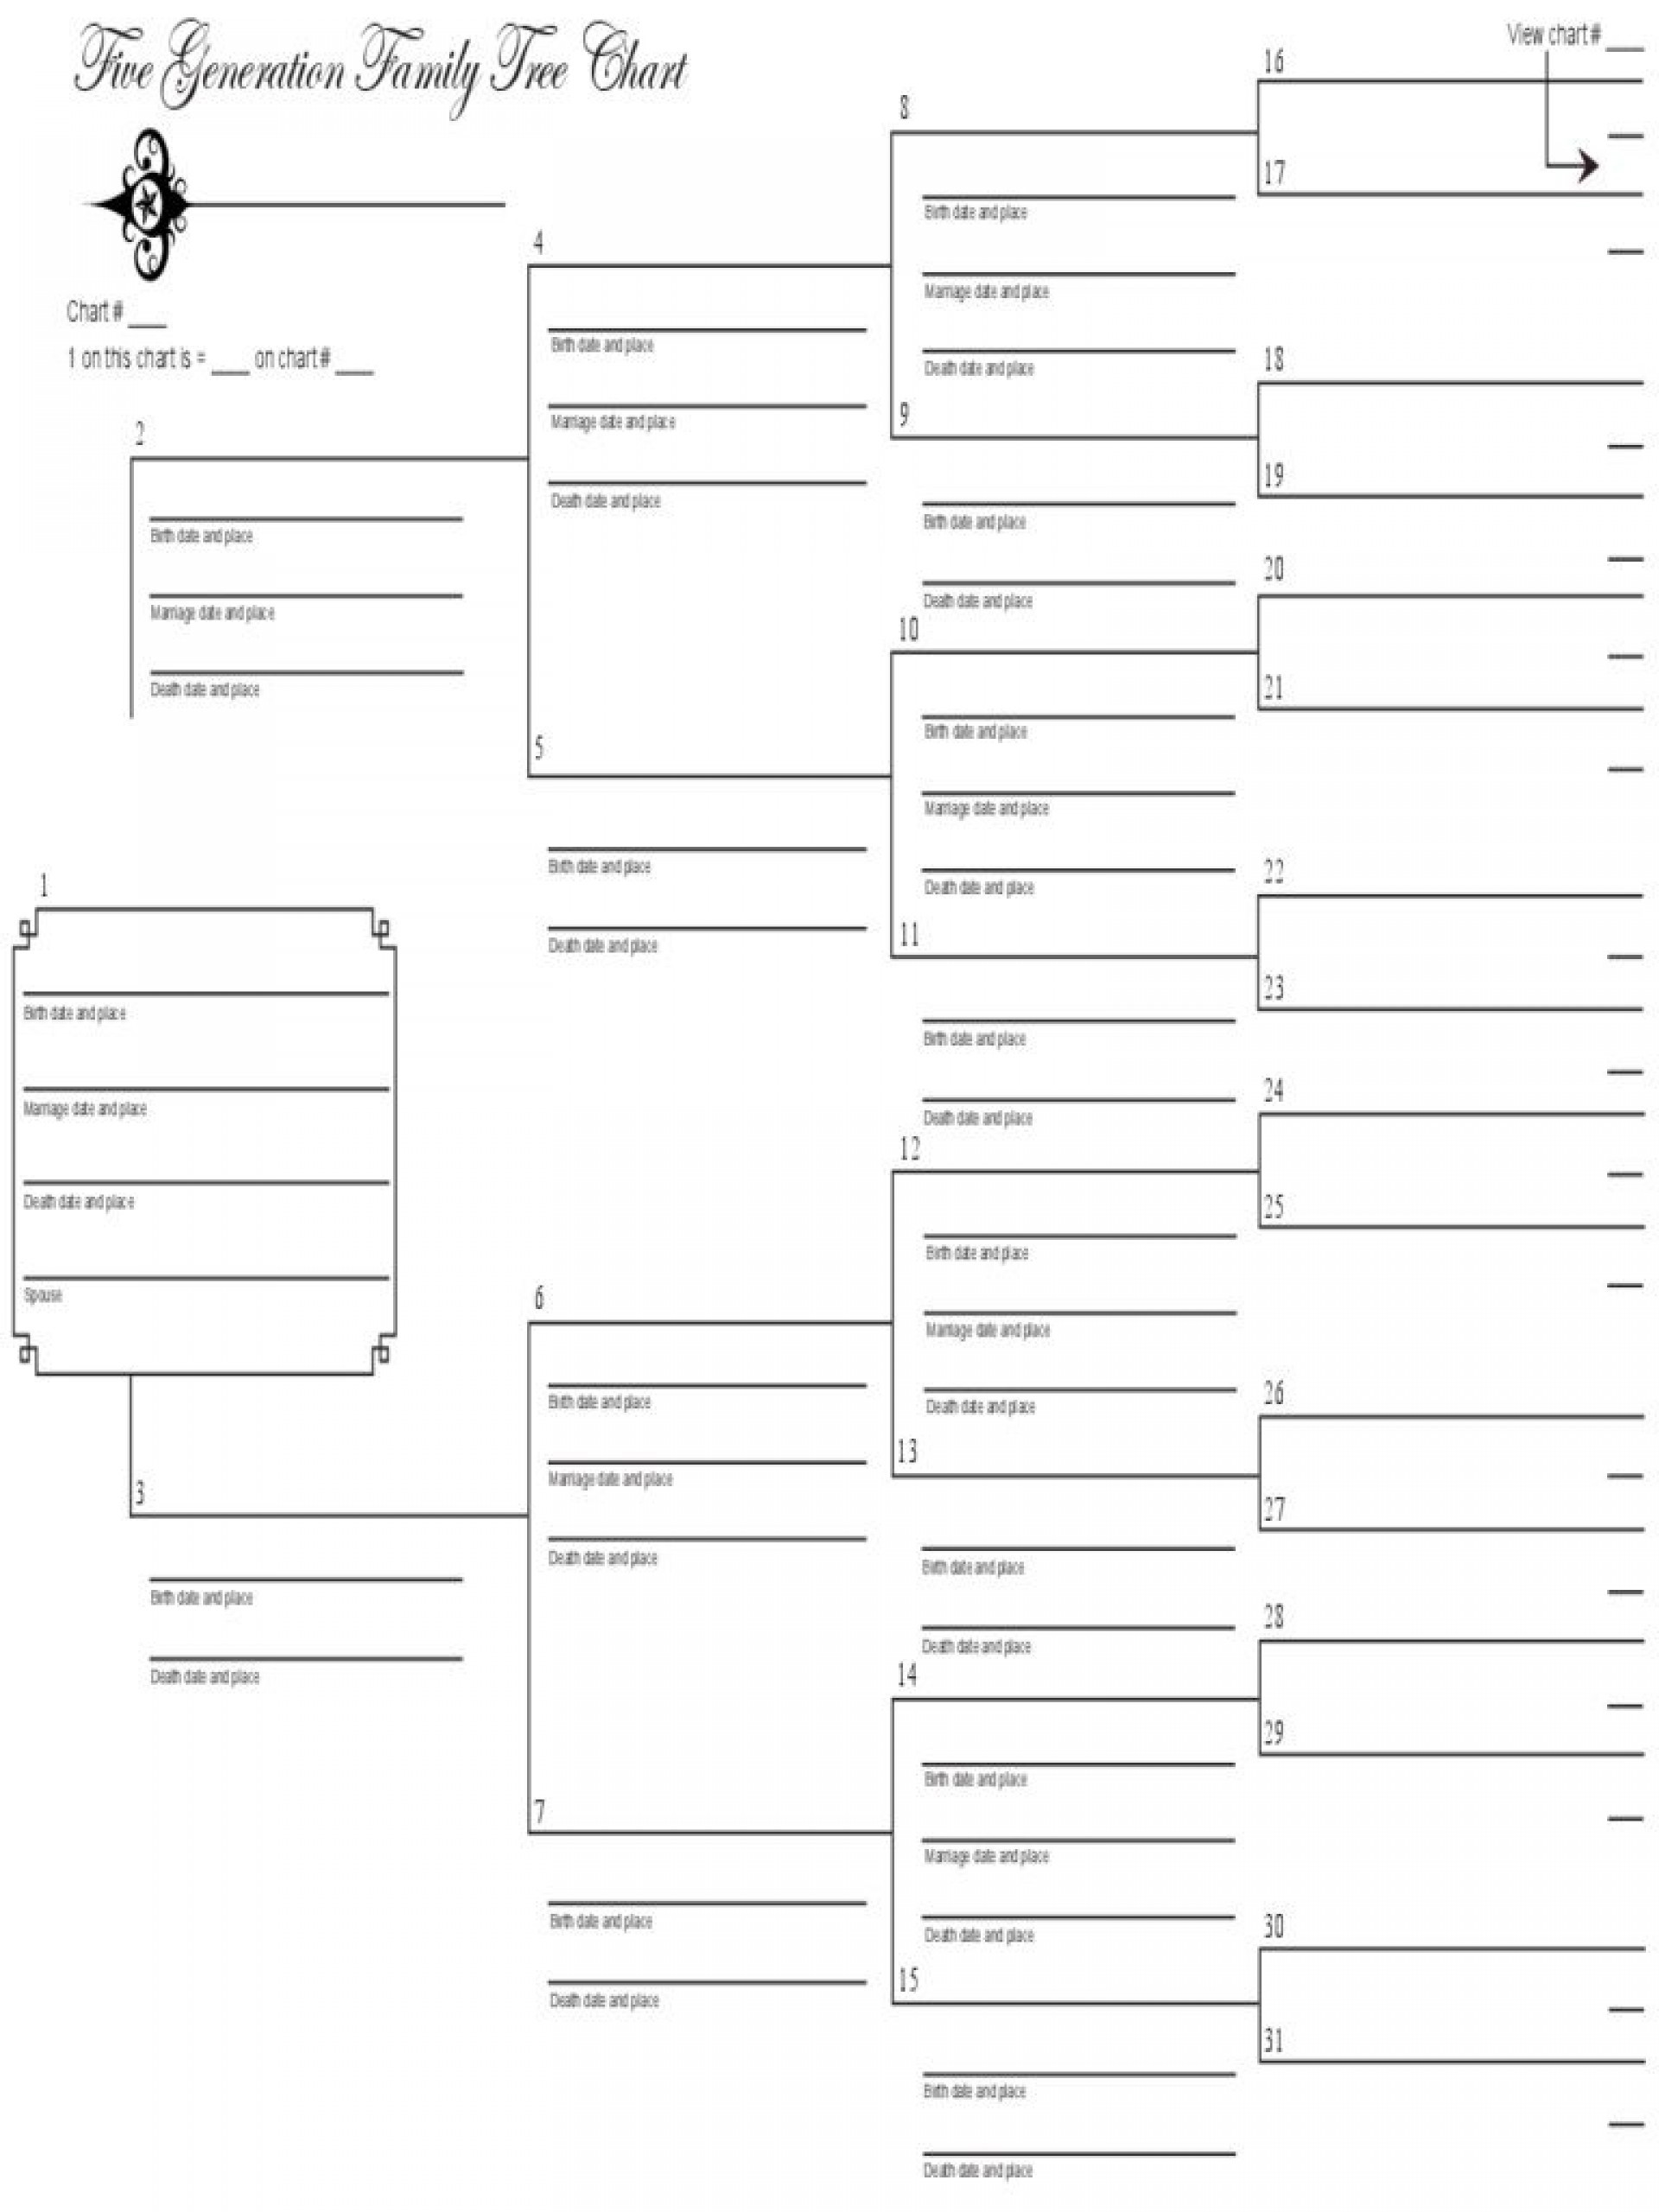 Fillable Family Tree Template